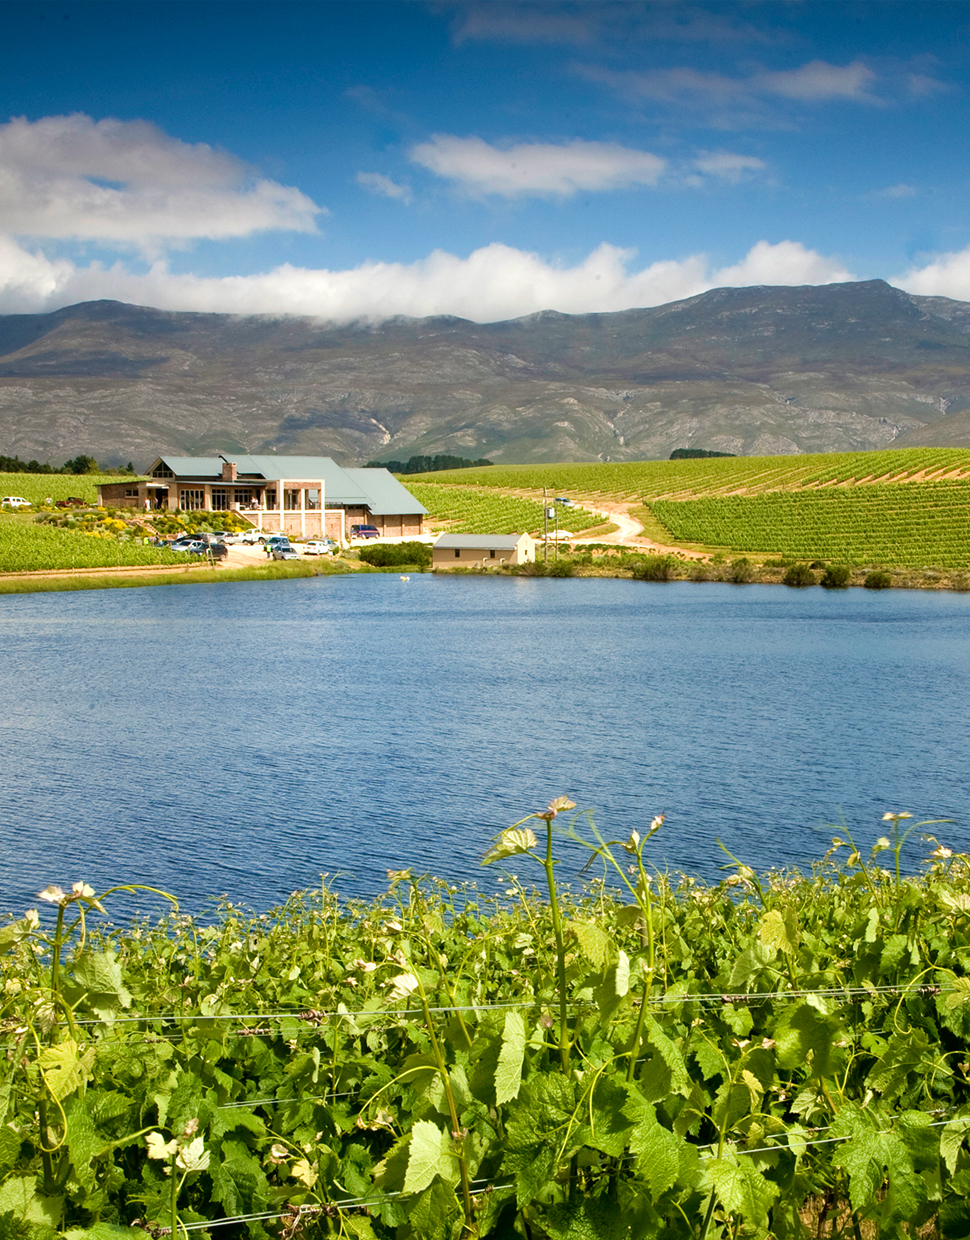 BEST-OF-HEMEL-EN-AARDE-COOL-CLIMATE-WINE-VALLEY.jpg